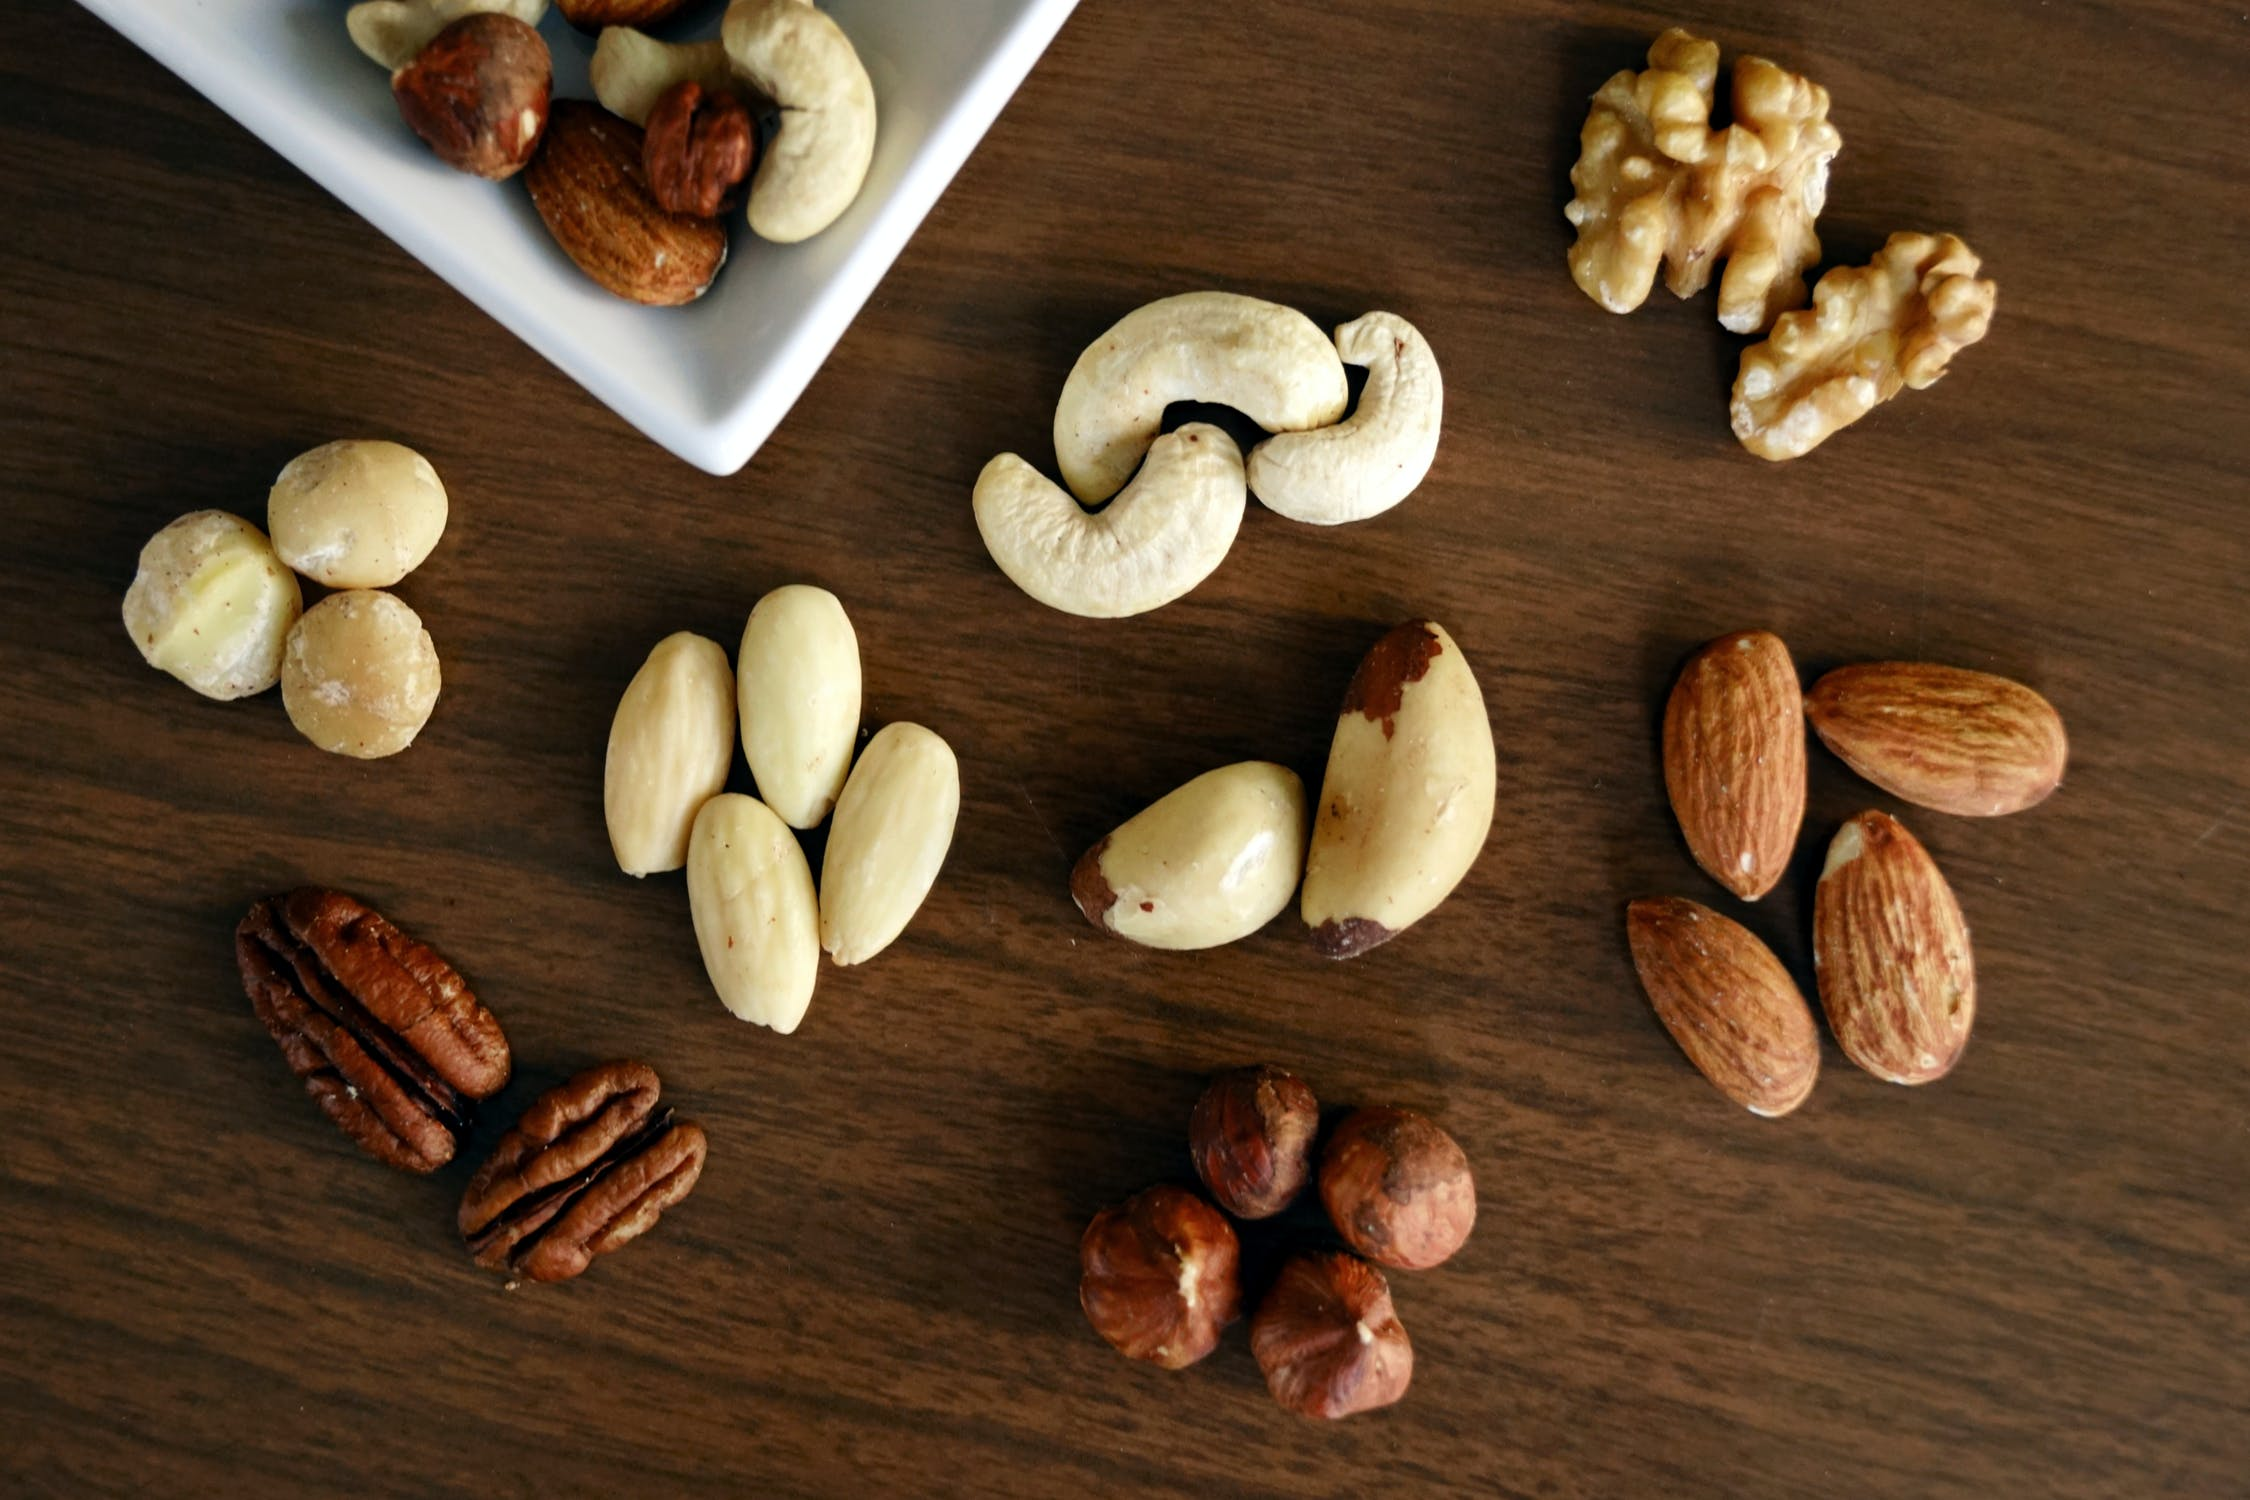 By eating walnuts and pecans how much more likely are you to live longer and healthier?